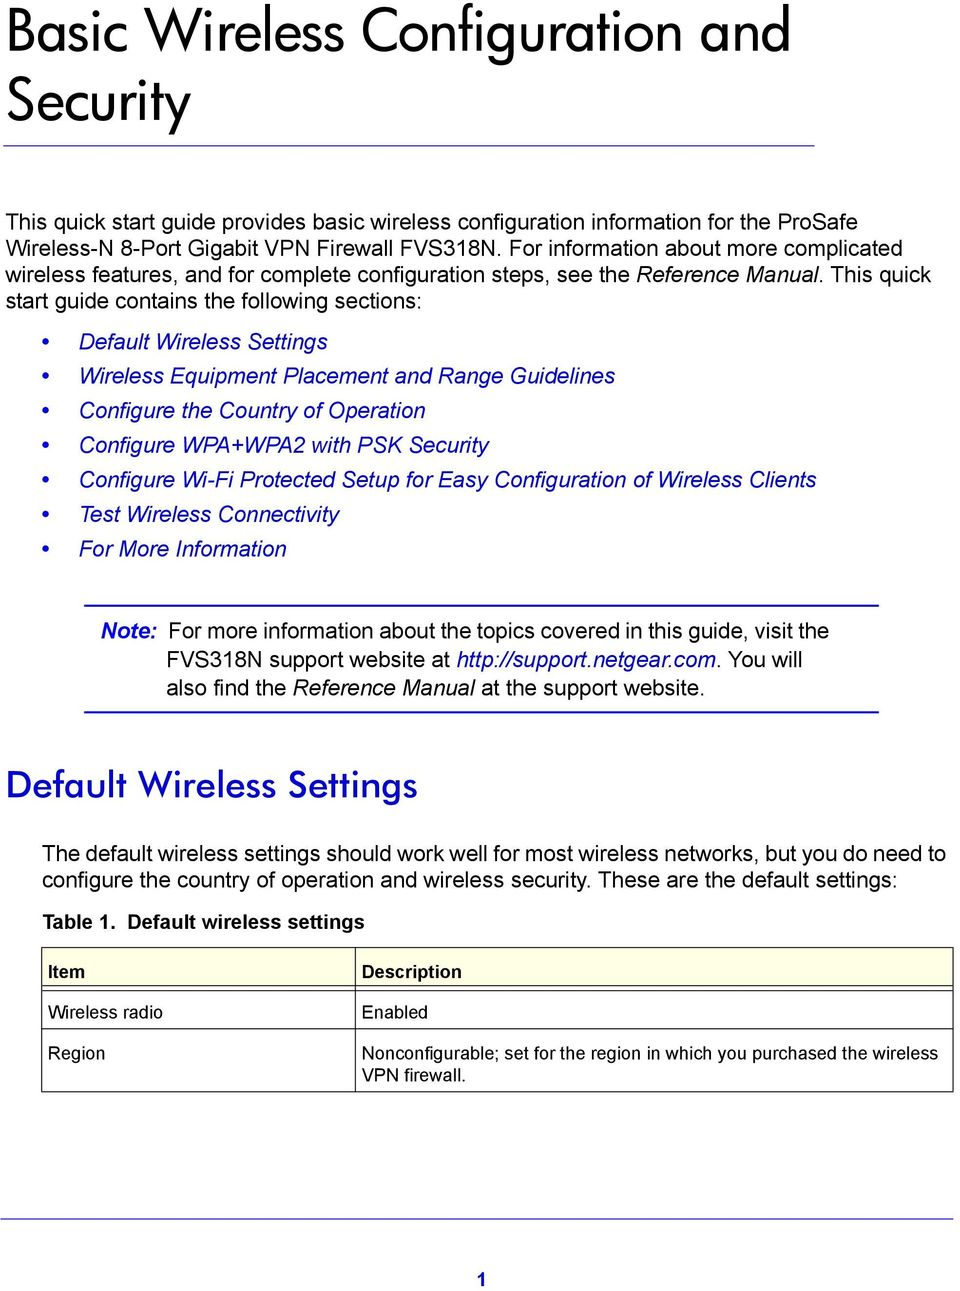 This quick start guide contains the following sections: Default Wireless Settings Wireless Equipment Placement and Range Guidelines Configure the Country of Operation Configure WPA+WPA2 with PSK